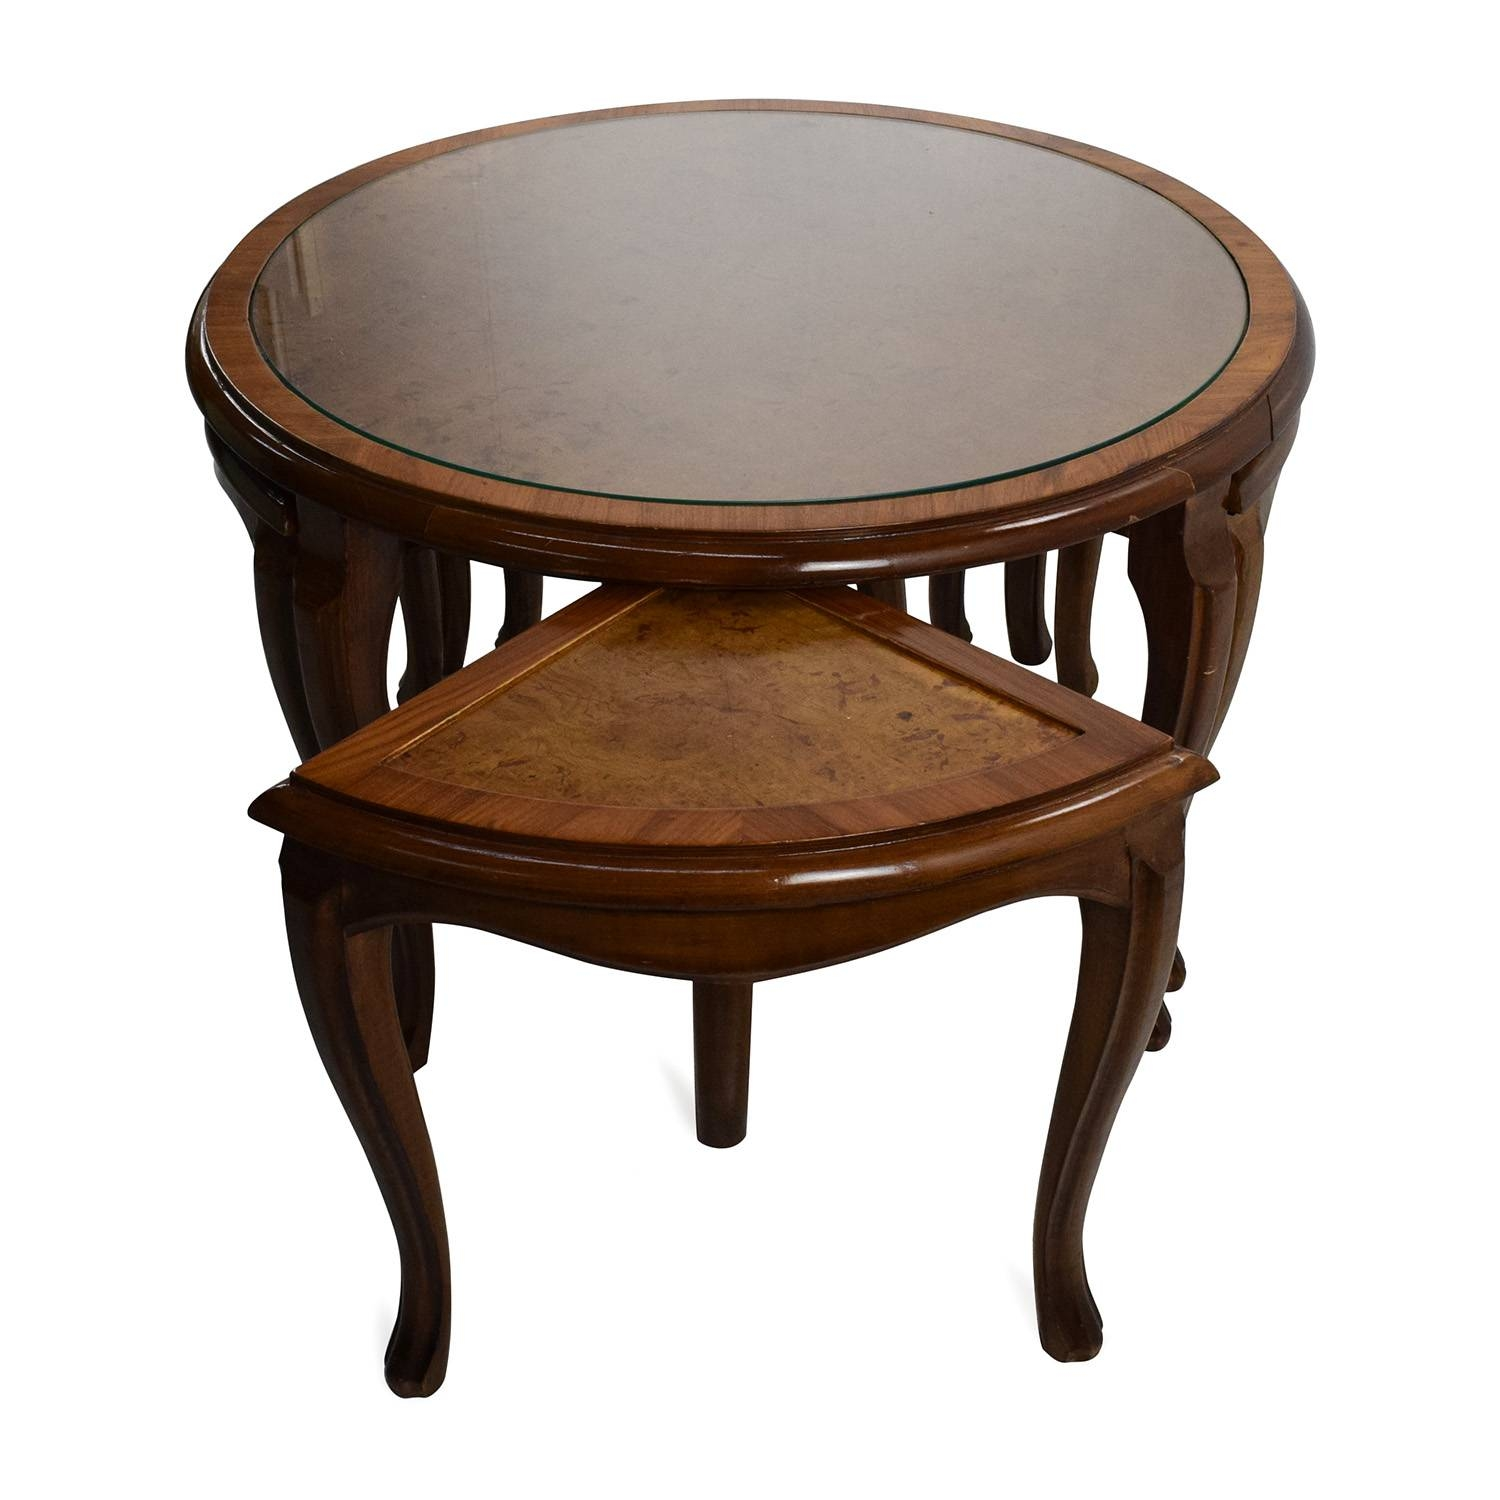 Best Coffee Tables 30 The Best Coffee Tables With Nesting Stools